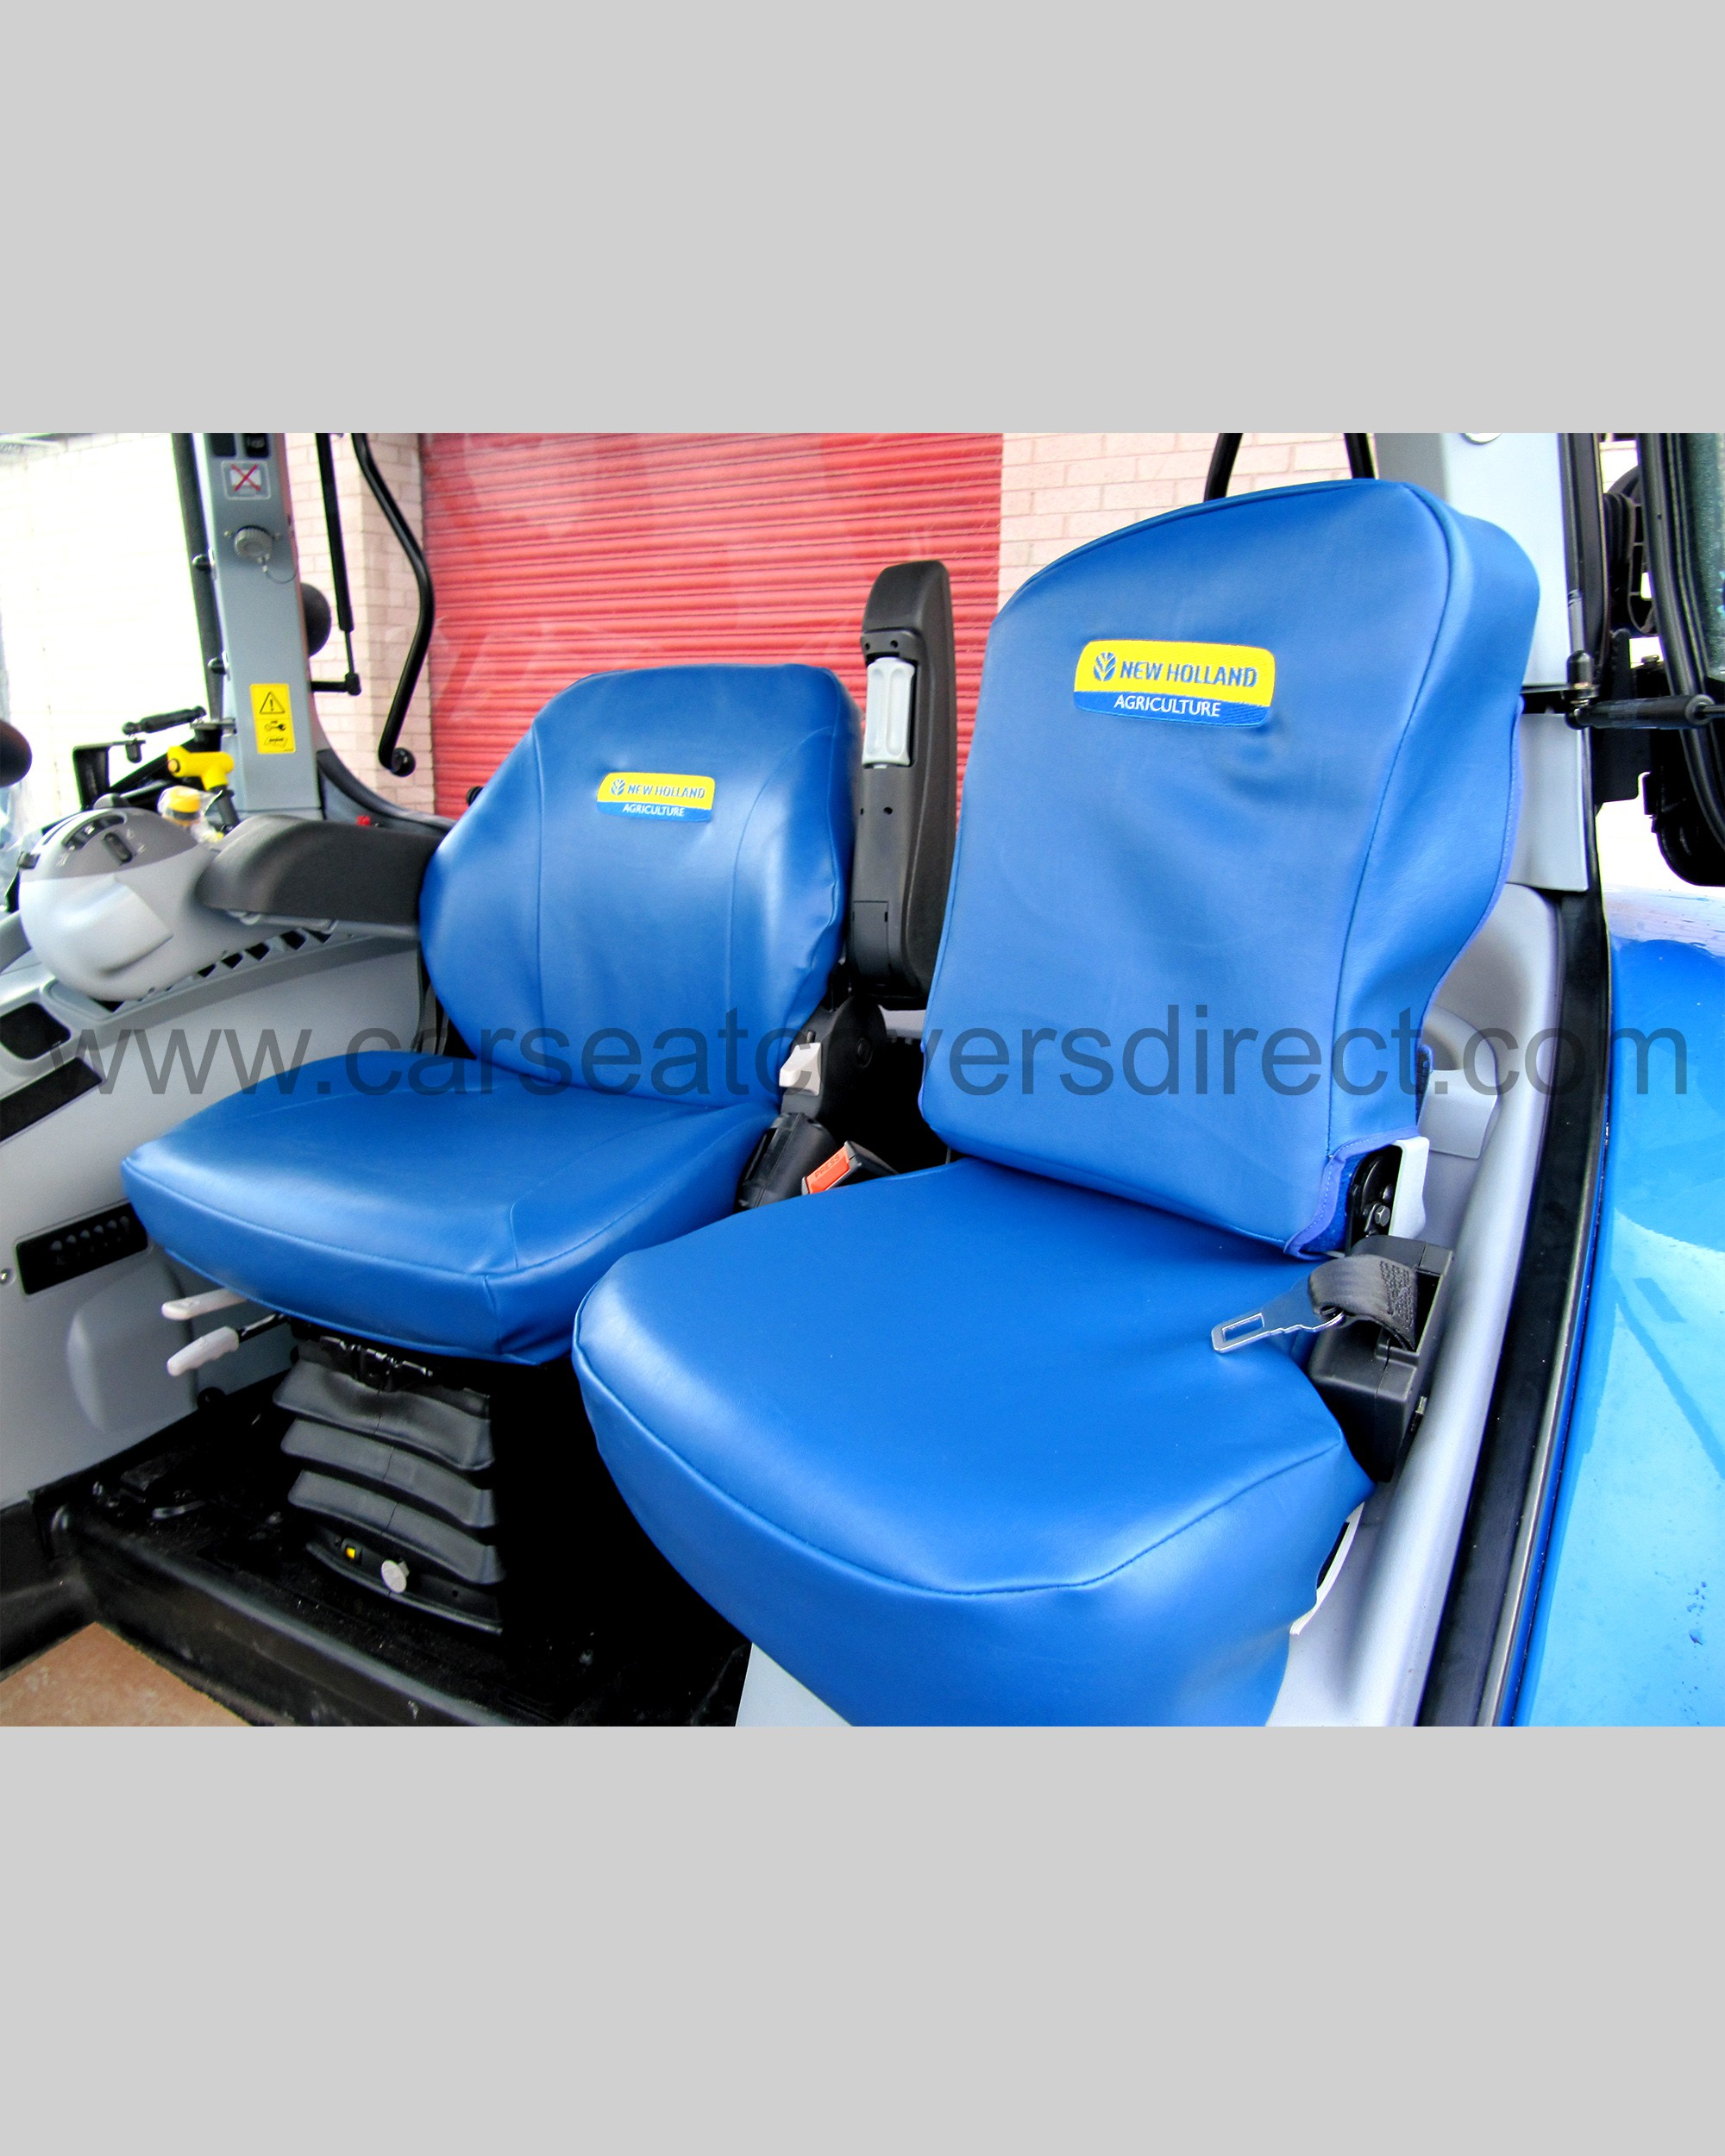 Tractor Seat Tn65 : New holland tractor seat covers car direct